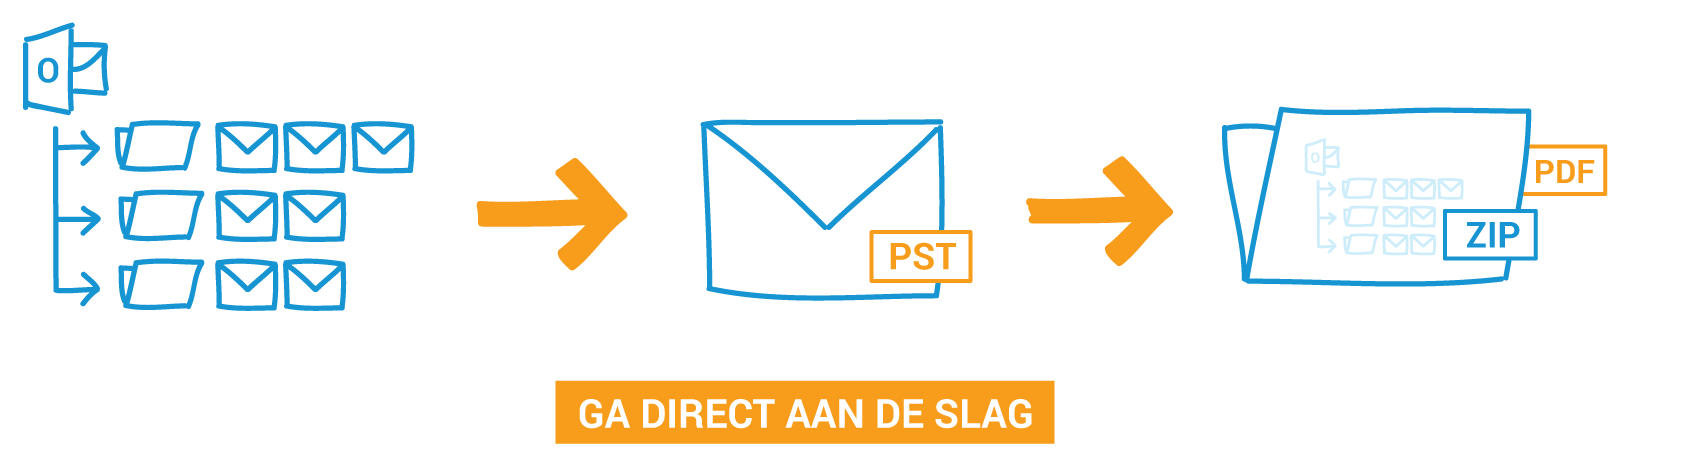 Outlook PST naar PDF